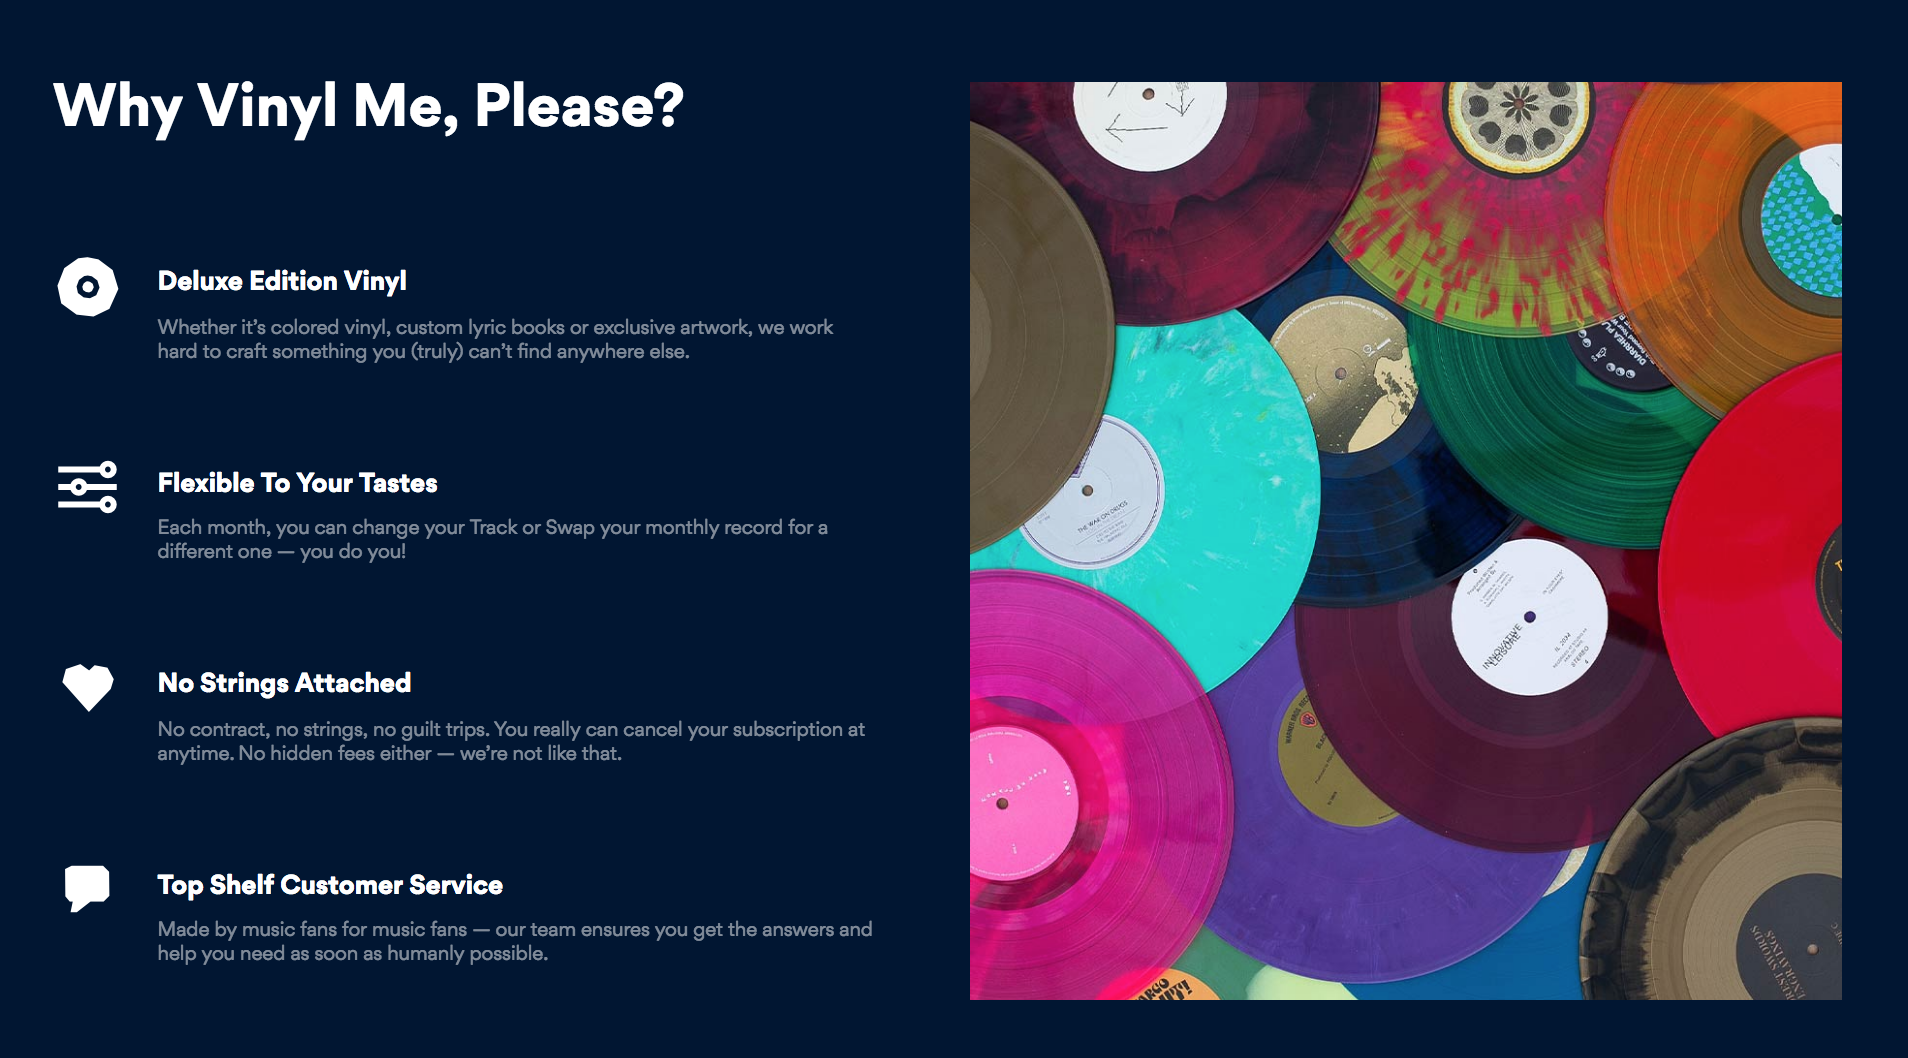 vinyl me, please subscription